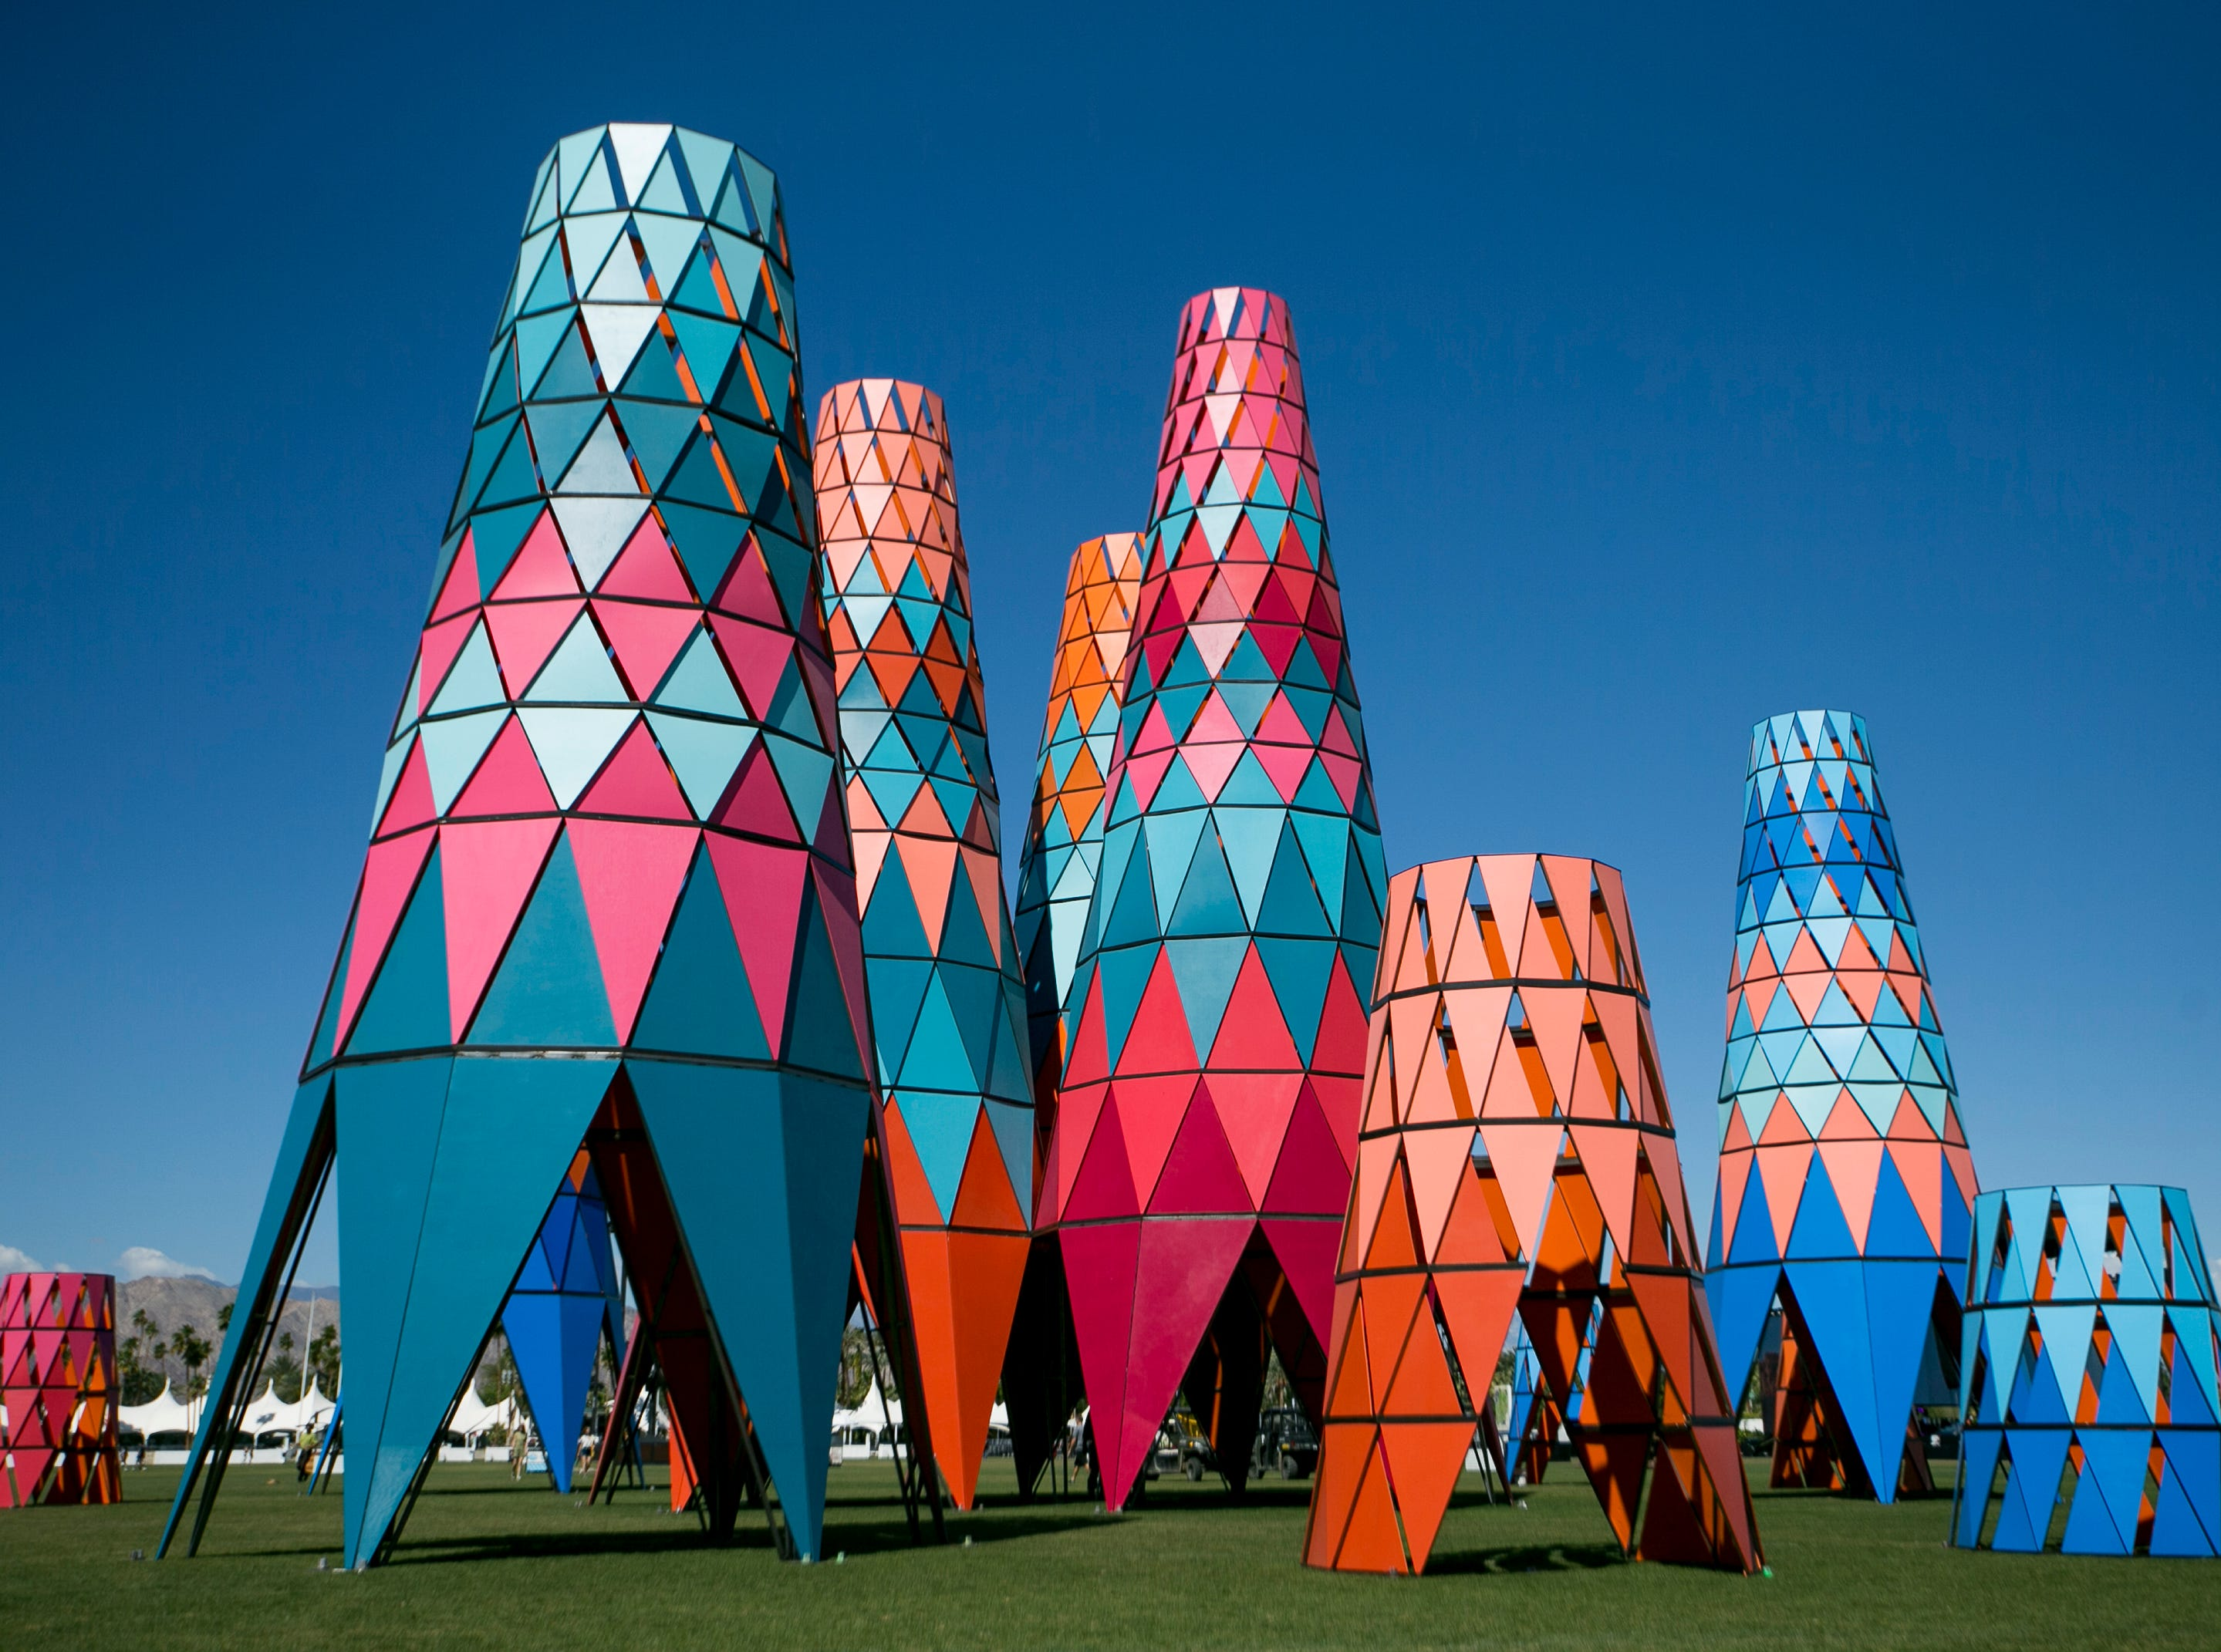 """Art installation """"SarbalŽ ke"""" by Burkina Faso is seen near the main stage at the Coachella Valley Music and Arts Festival in Indio, California, on April 12, 2019."""